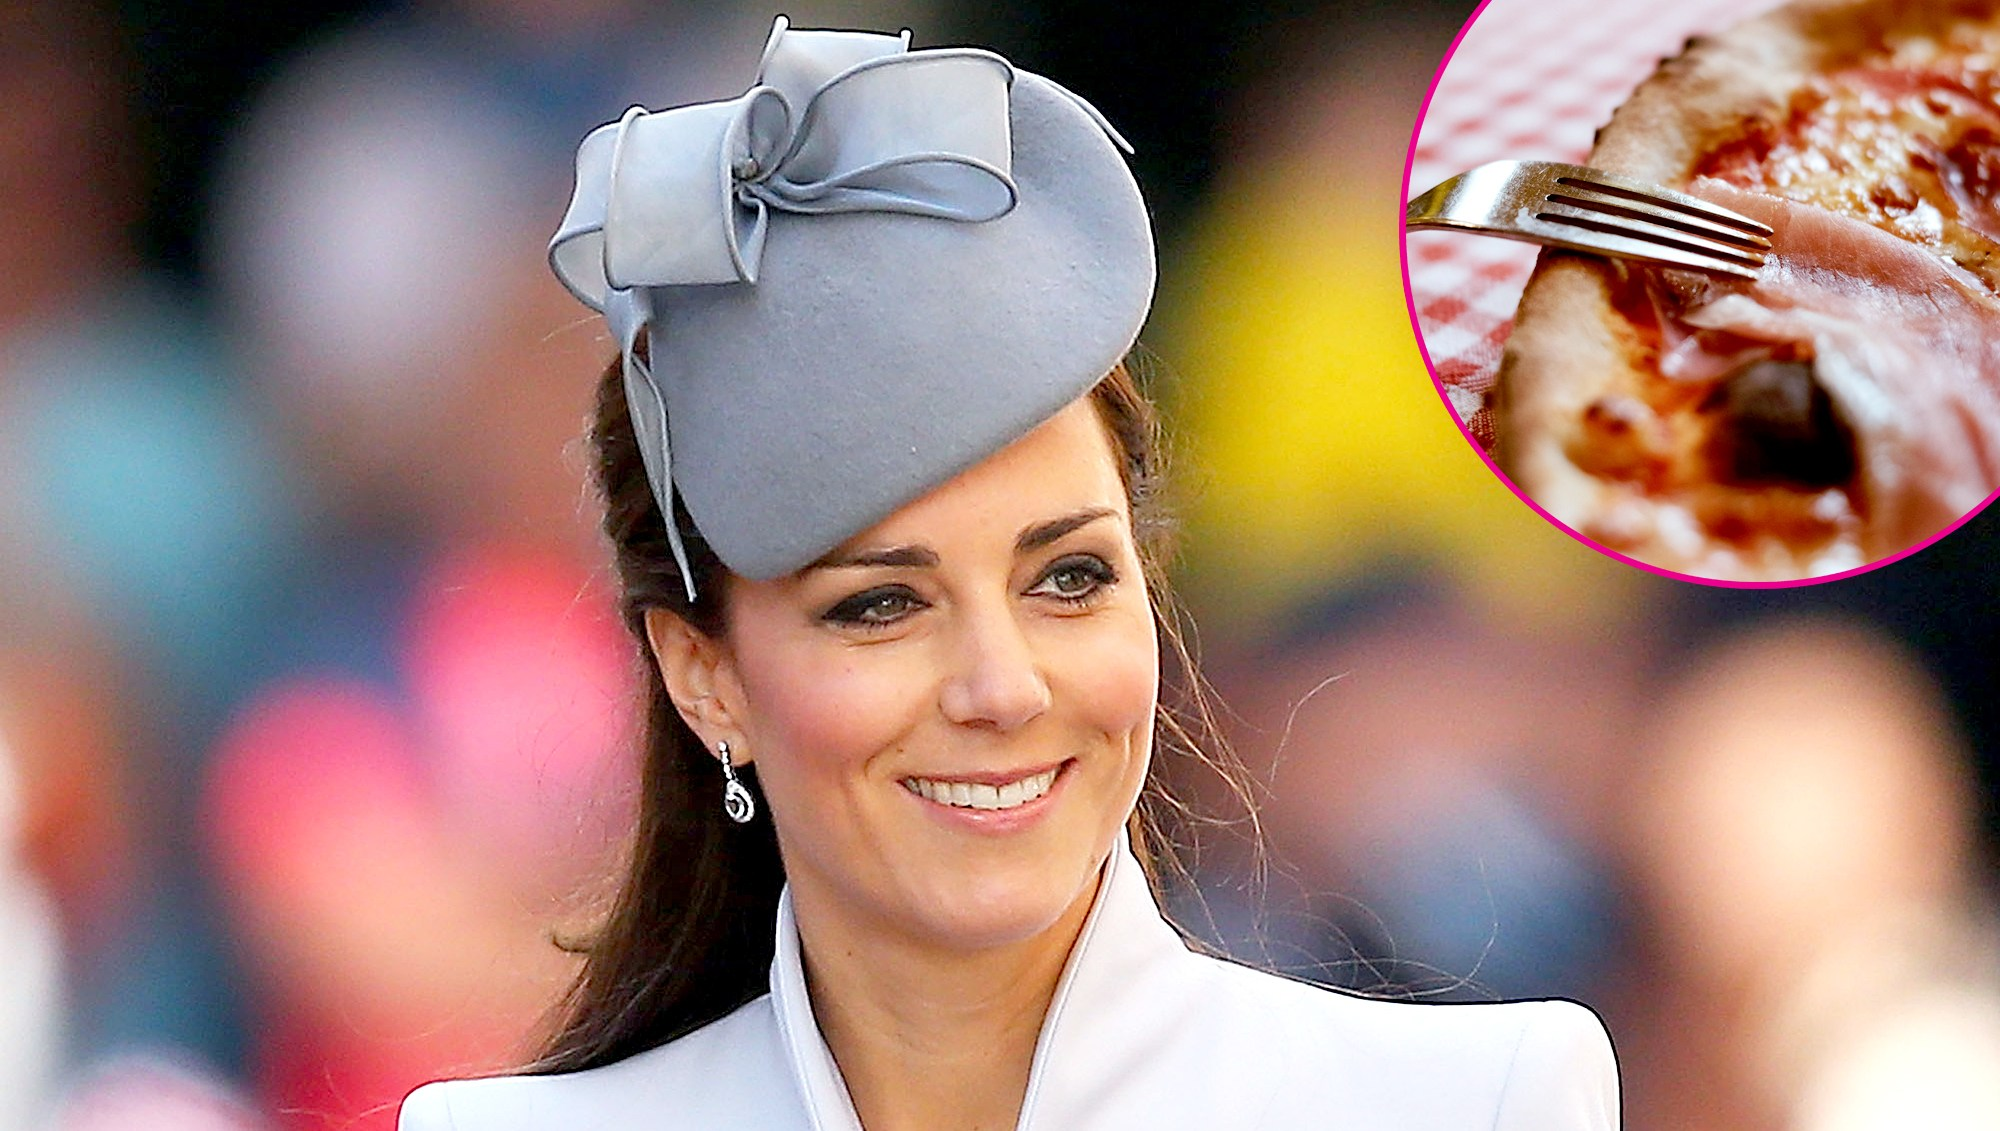 Duchess-Kate-bacon-on-pizza